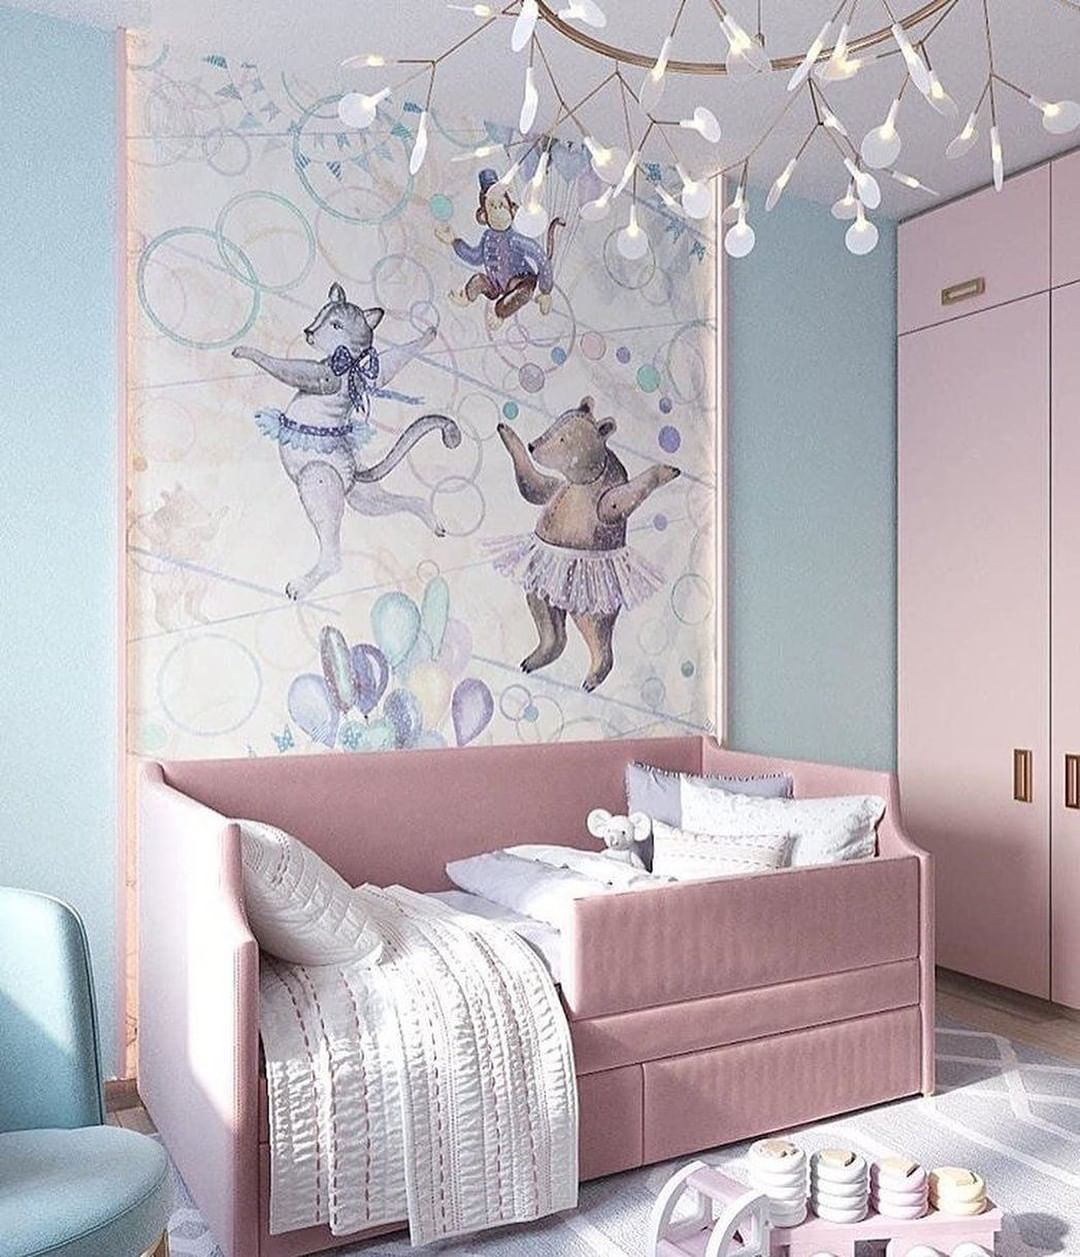 Soft-Toned Nursery Room in Blue and Pink by Vizzos